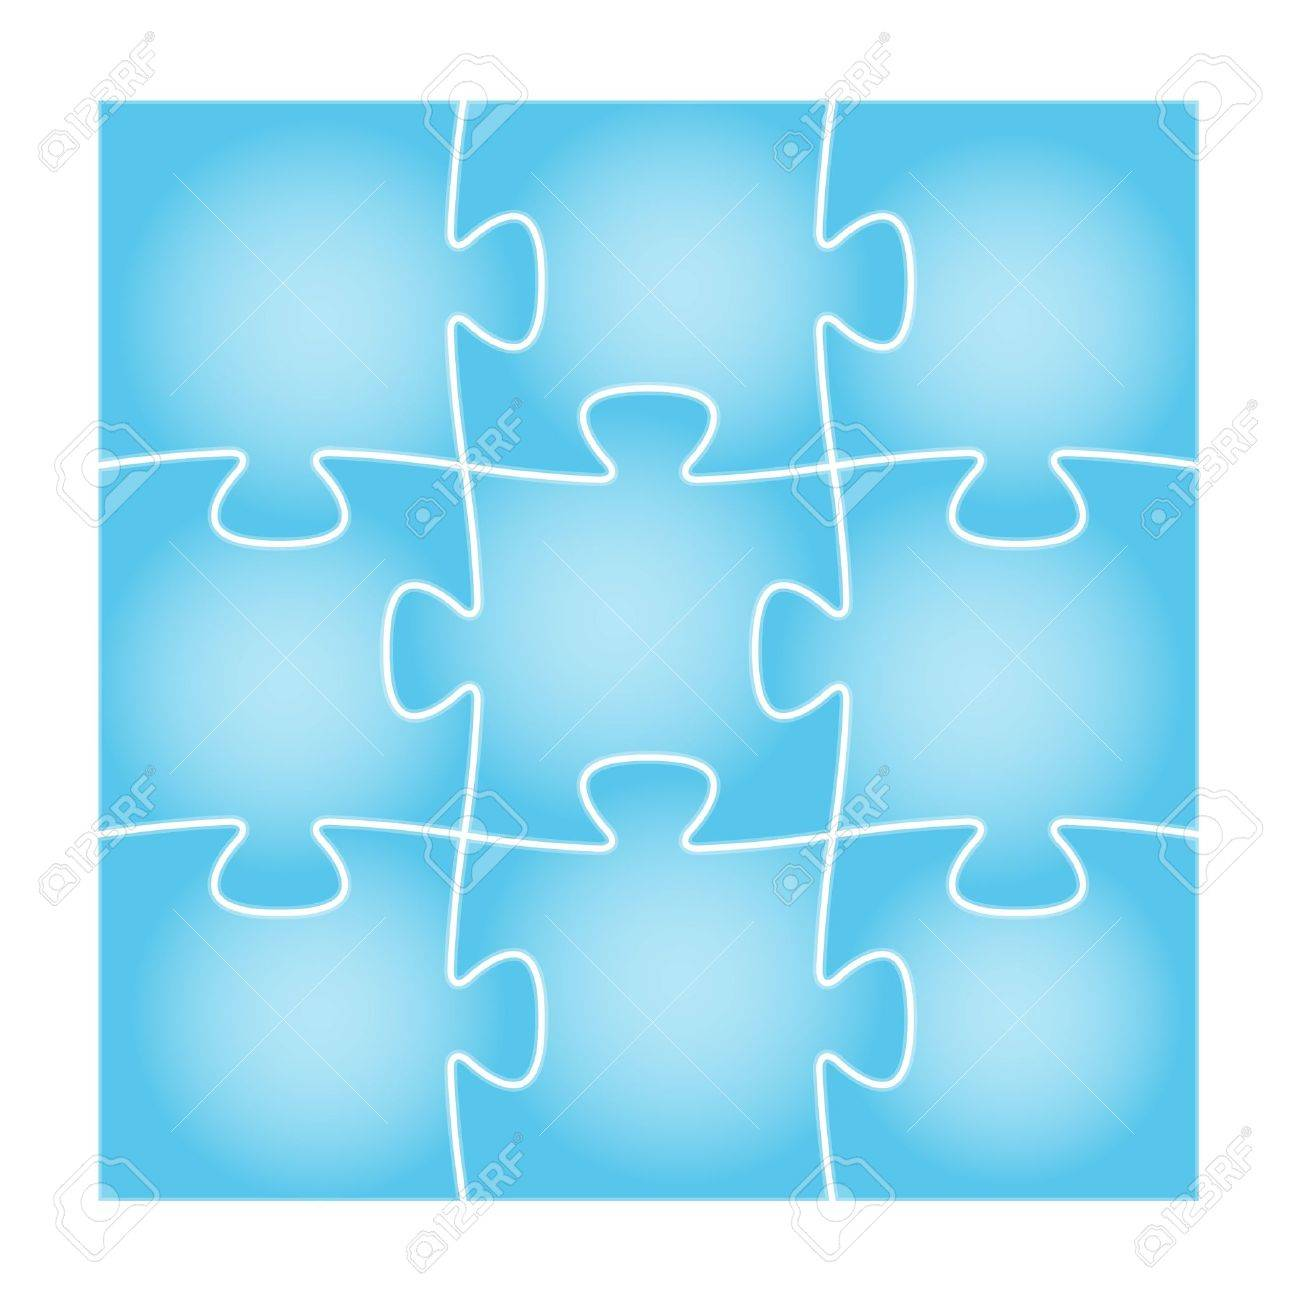 Set of nine blue puzzle pieces in the square composition   puzzle background Stock Vector - 19140963